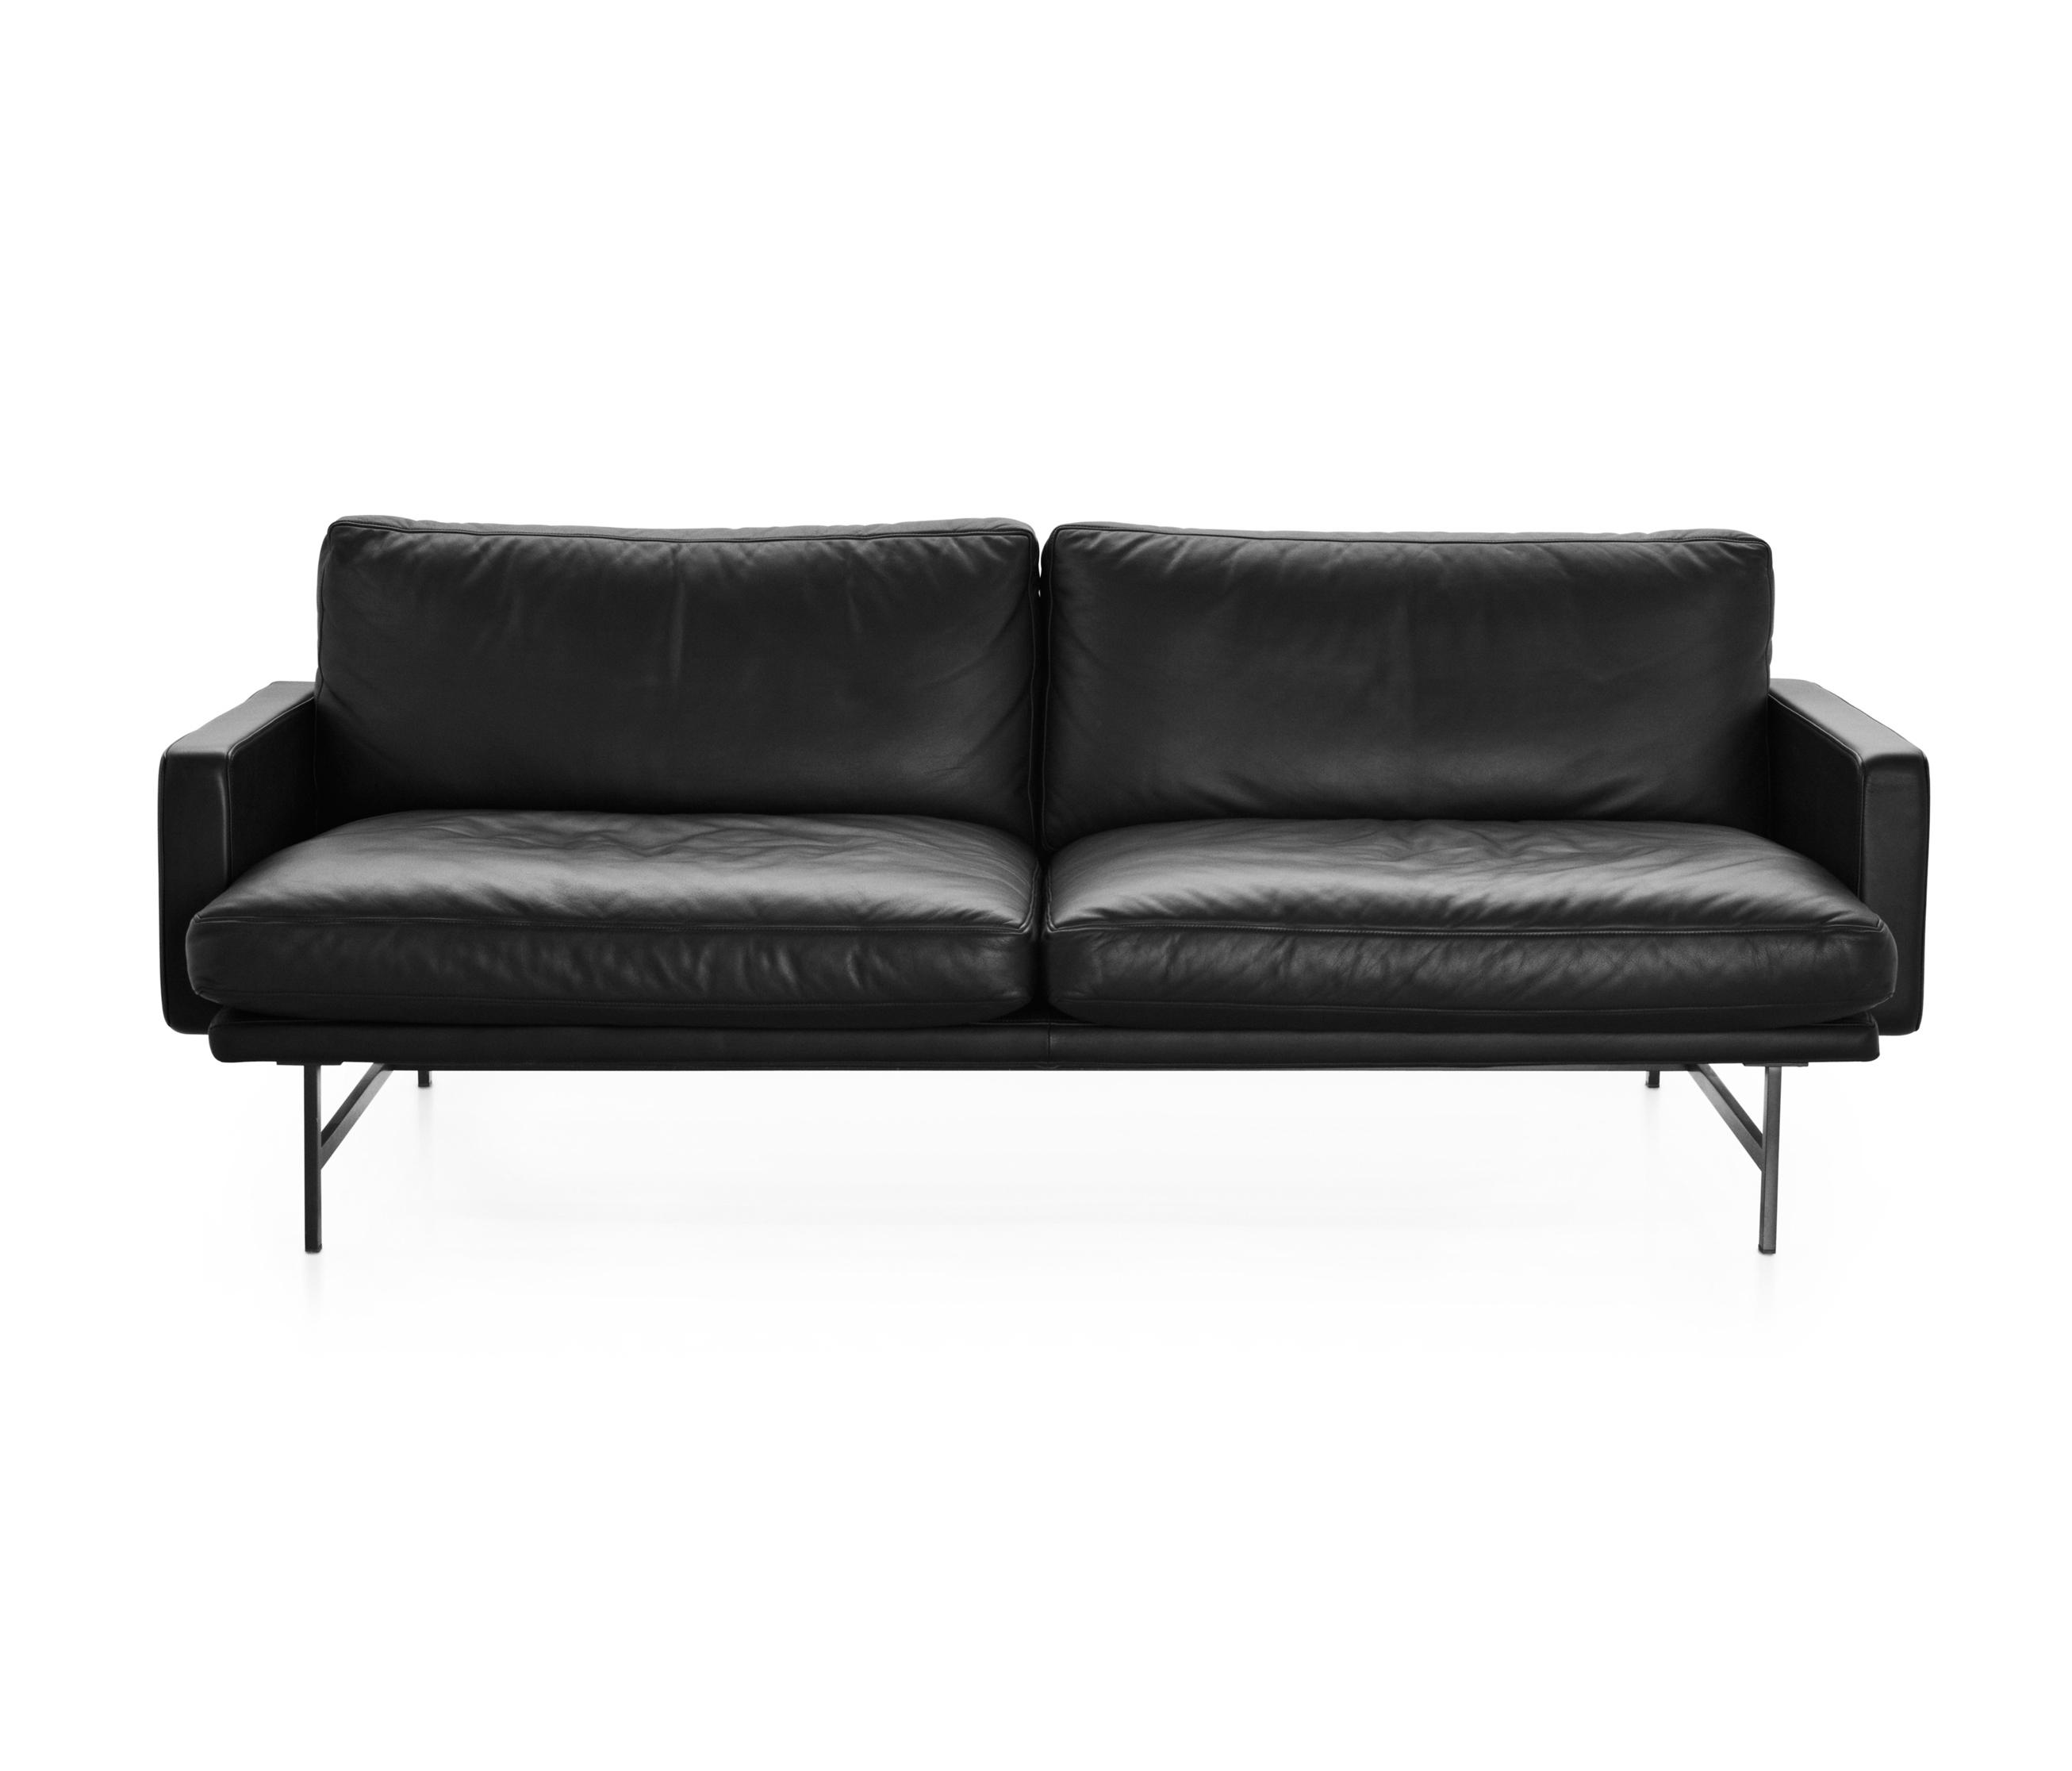 lissoni sofa pl112 sofas von fritz hansen architonic. Black Bedroom Furniture Sets. Home Design Ideas